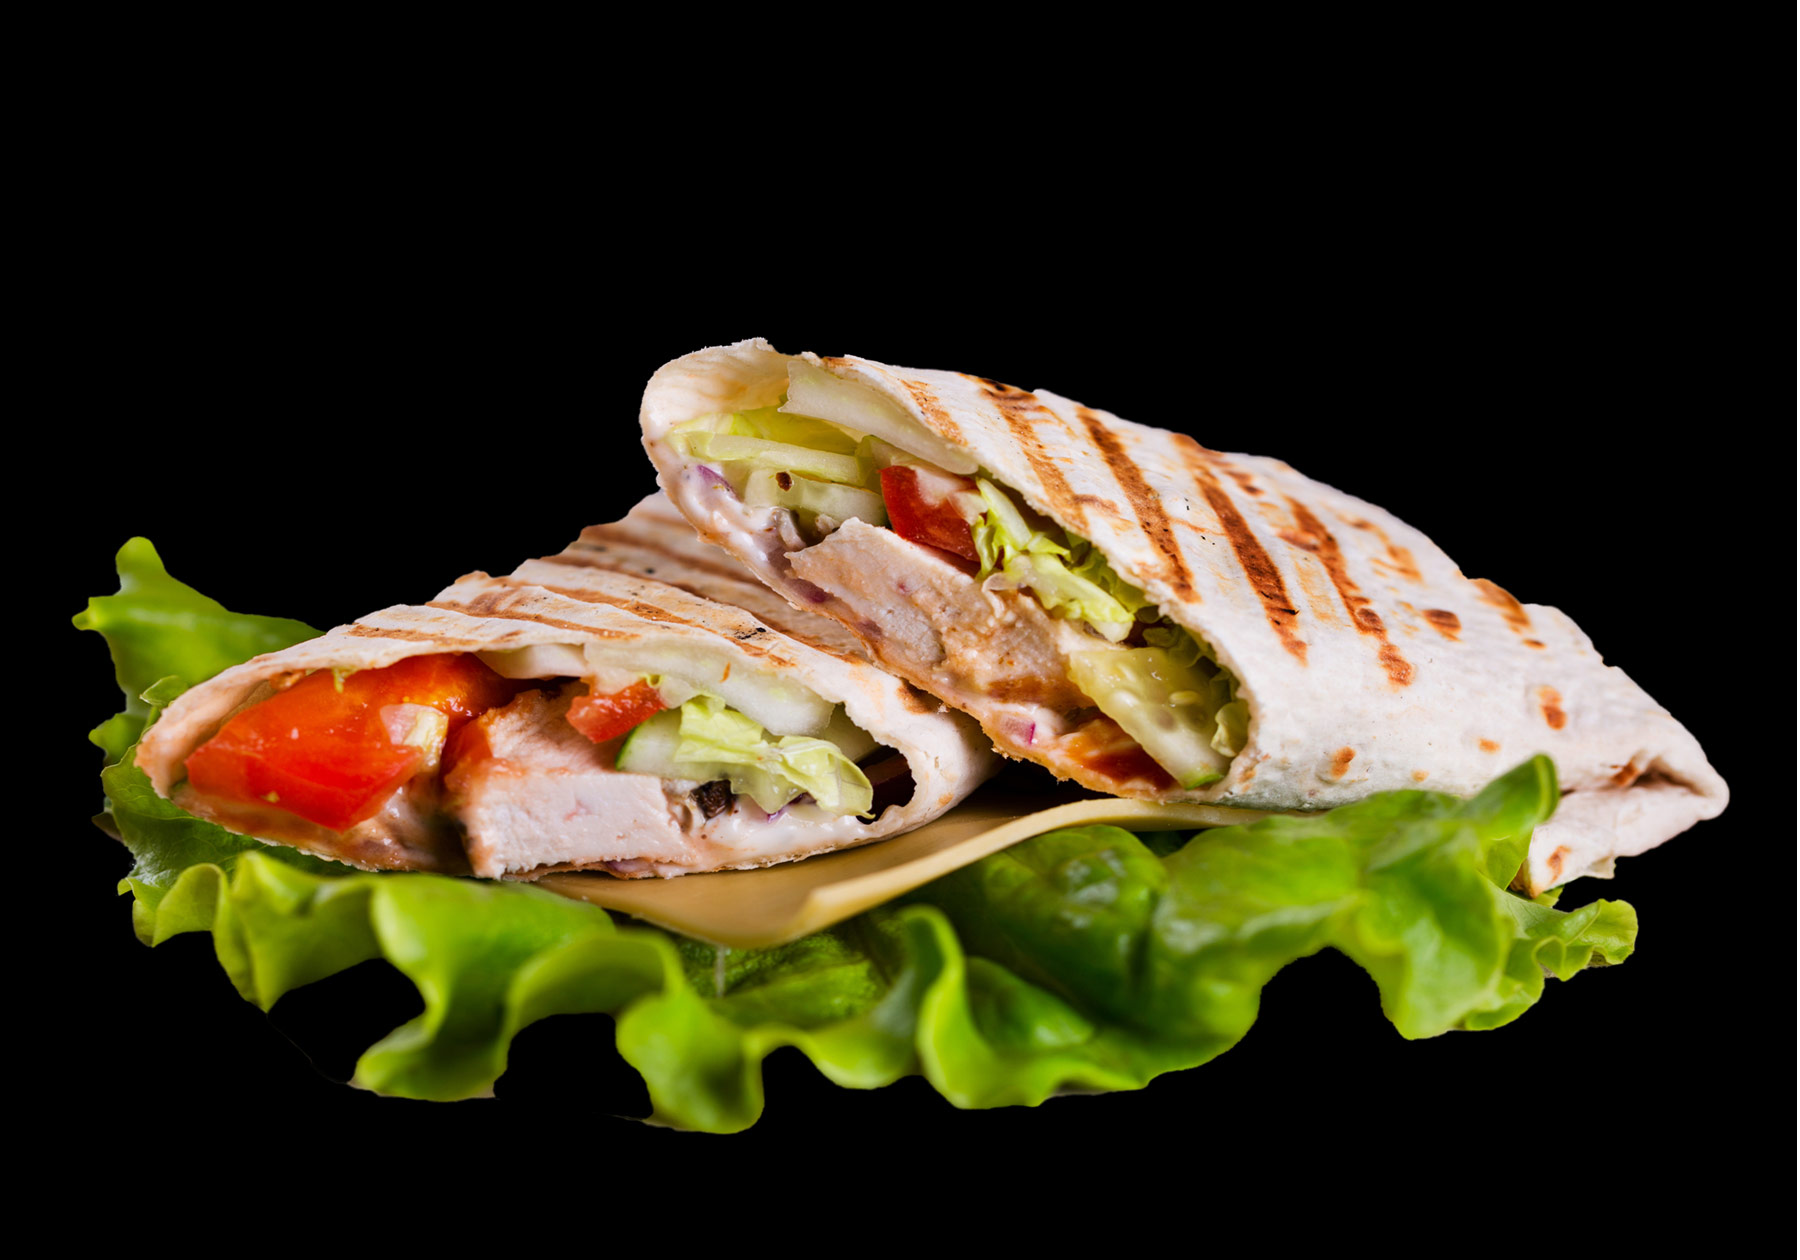 Chicken Wrap Grilled chicken, lettuce, tomato, cheddar jack cheese, bacon, and our homemade ranch dressing wrapped in a fresh garlic tortilla. Served with your choice of steak fries, french fries, onion rings, chips, or Texas Toothpicks. 8.00